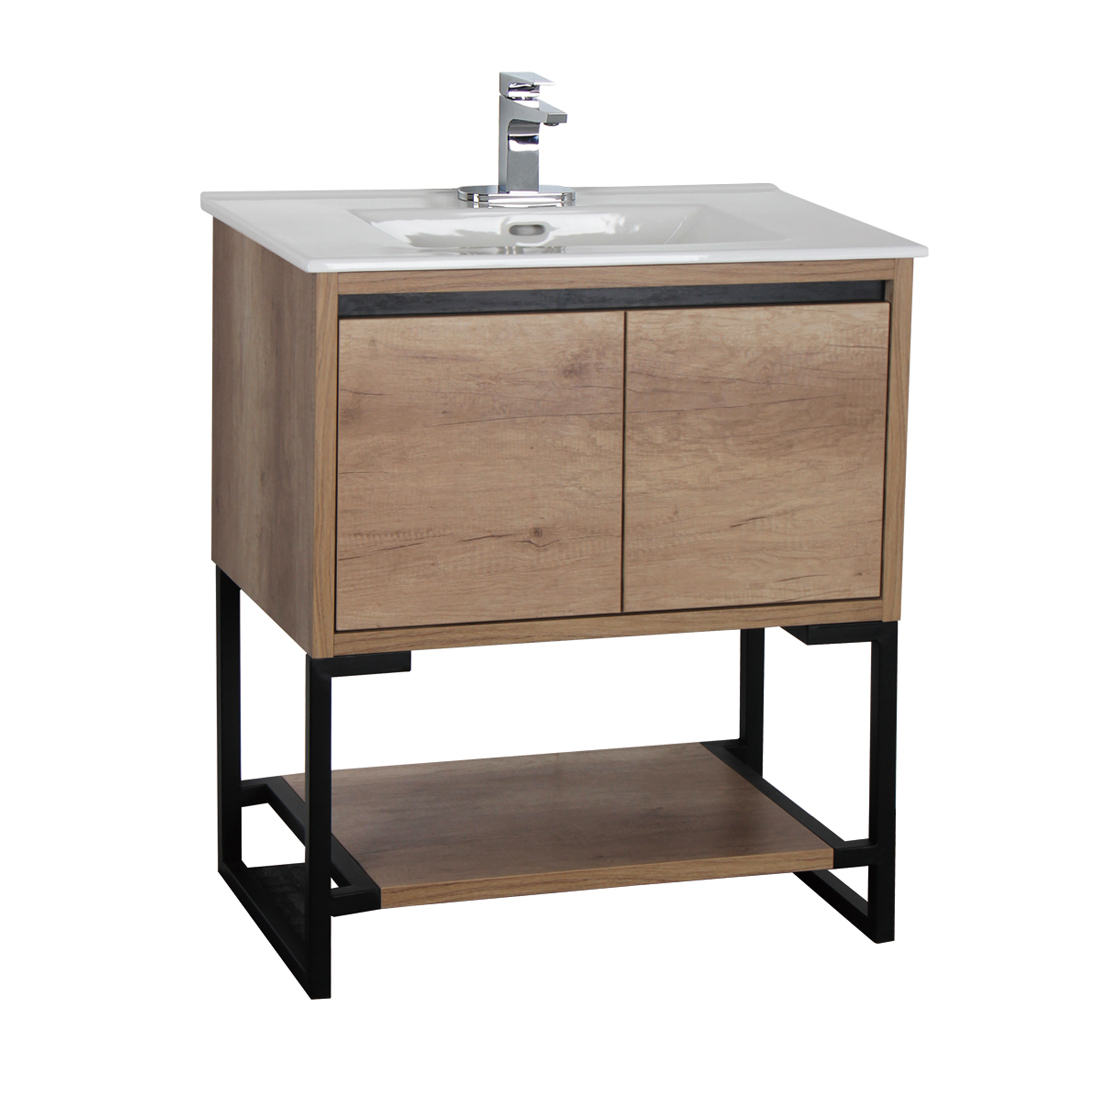 Morristown 30inch-NW Vanity front